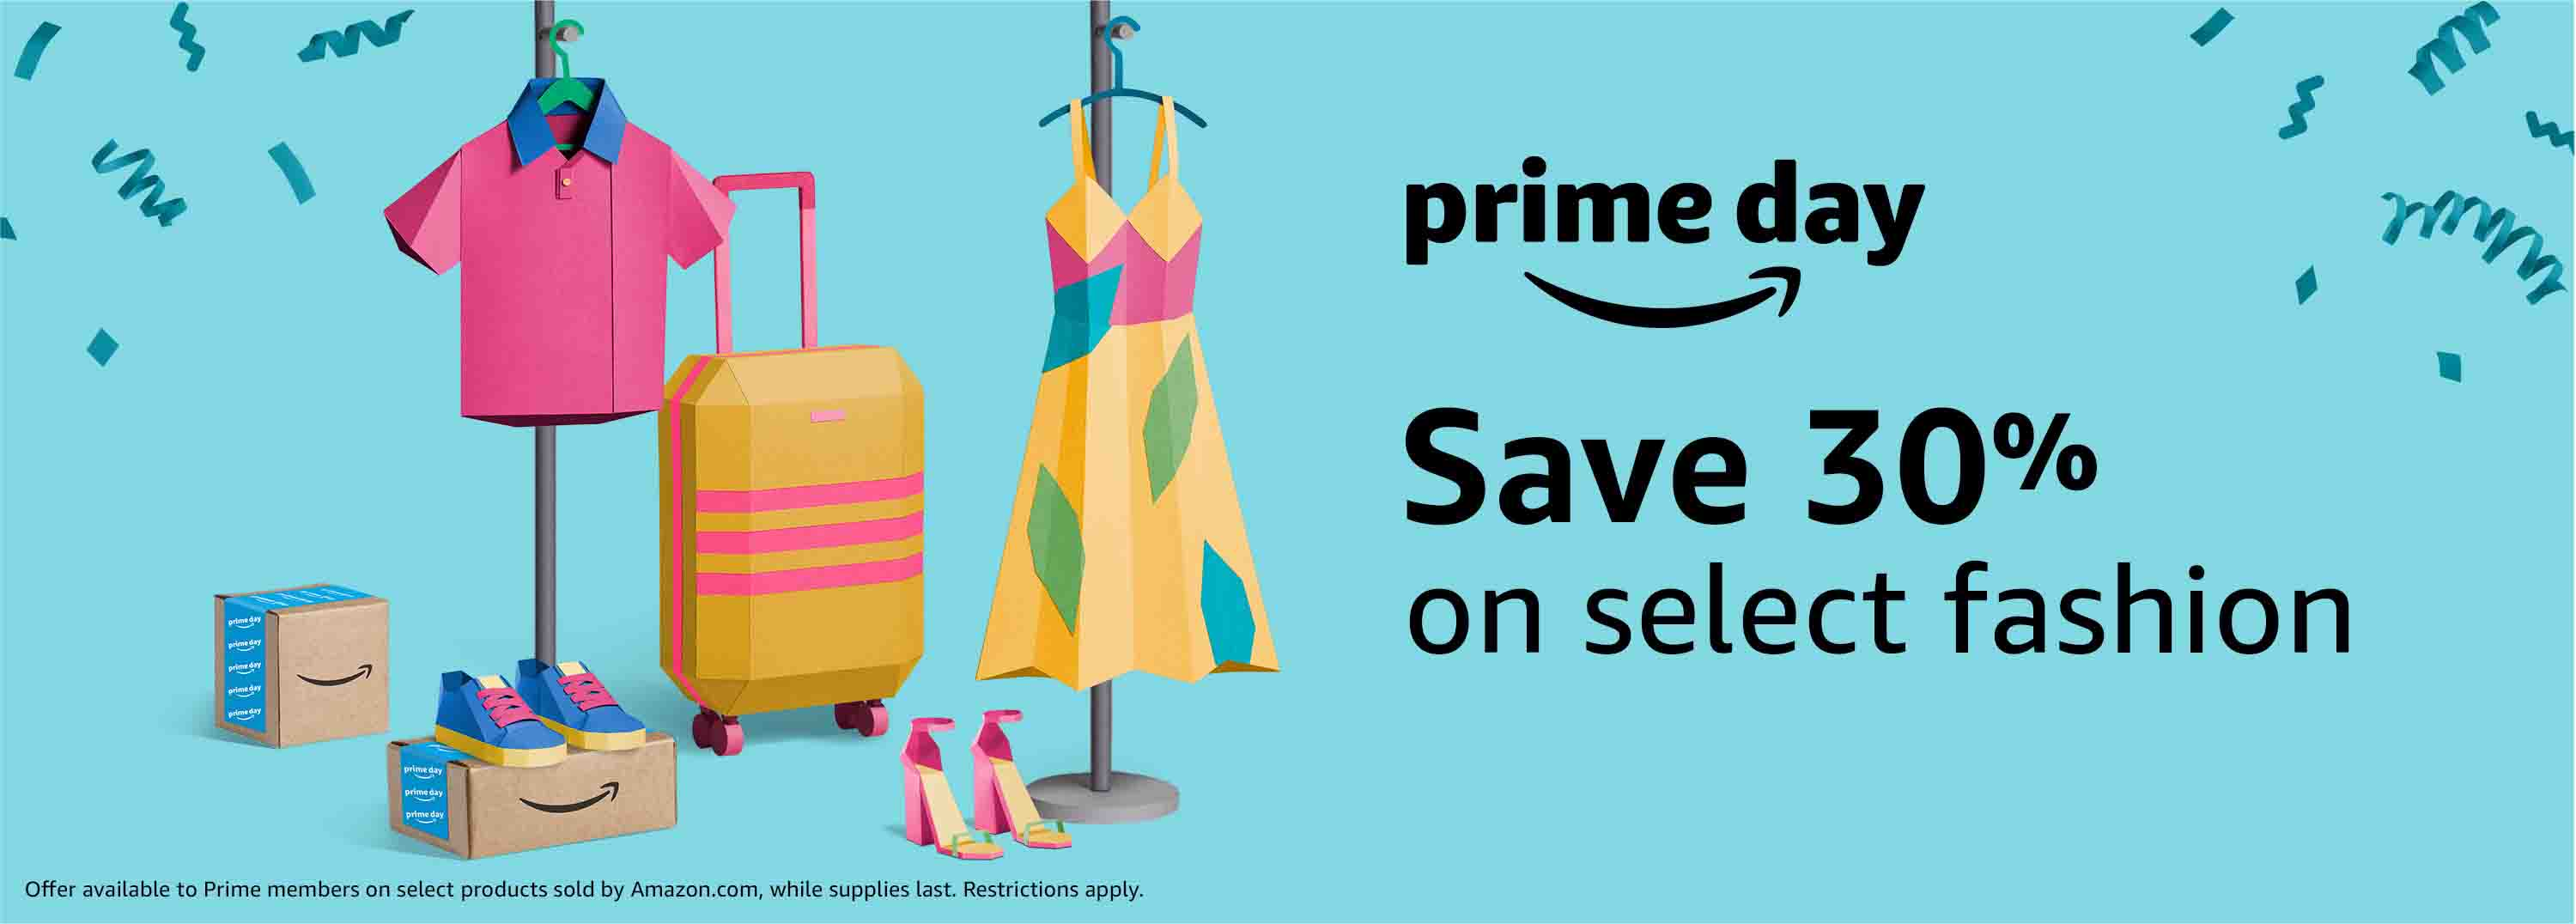 Prime Day 30% off clothing/shoes